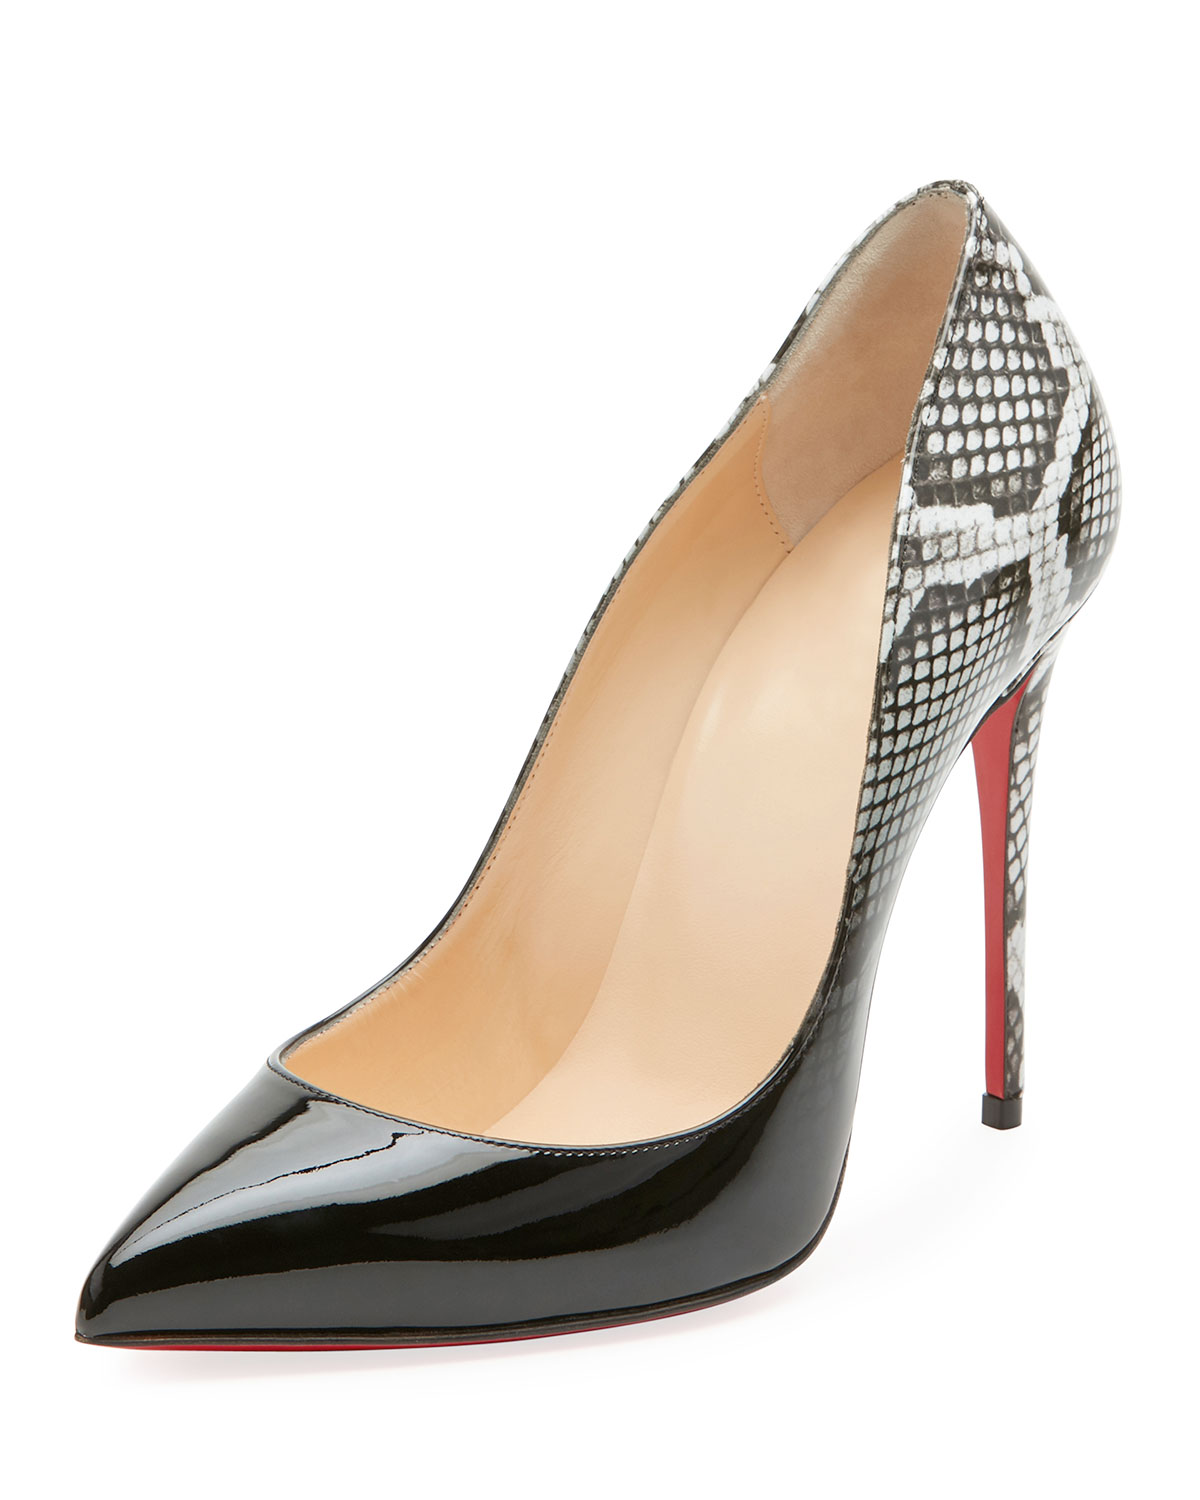 43891c5739e5 Christian Louboutin Pigalle Follies Ombre Snake-Print Red Sole Pump ...